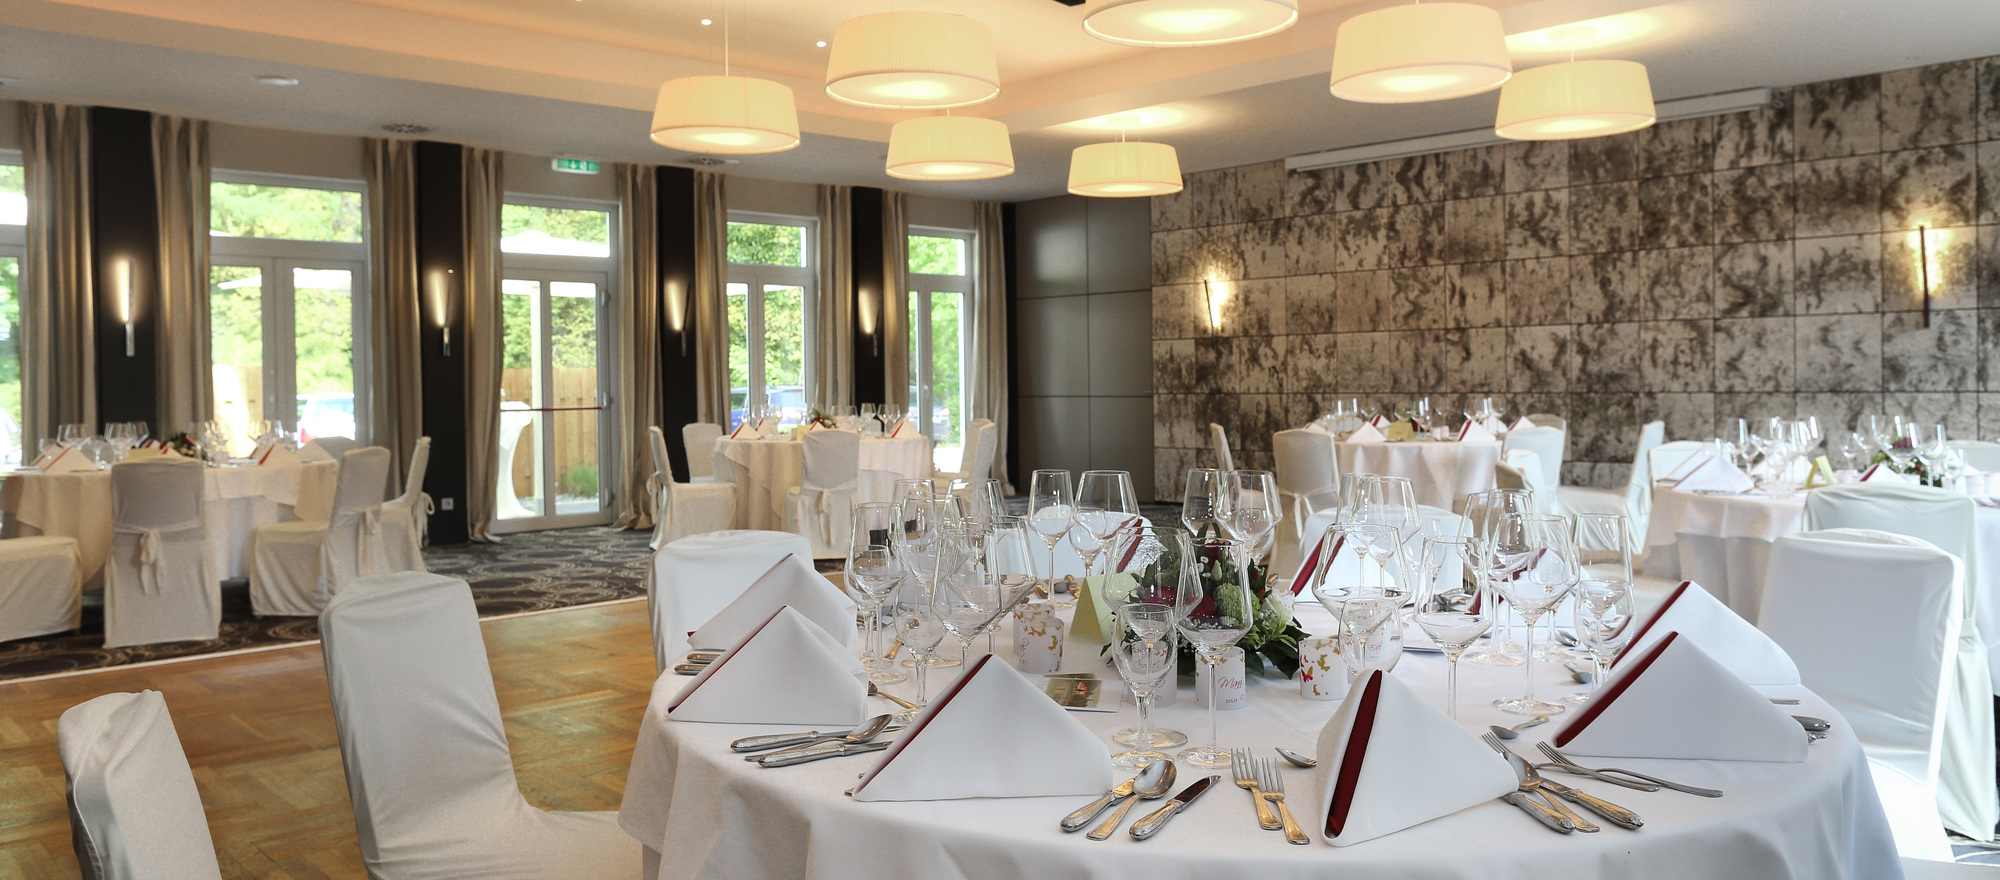 Elegant rooms for ceremonies in the Ringhotel Koehlers Forsthaus in Aurich, 4-star-hotel at the North Sea coast